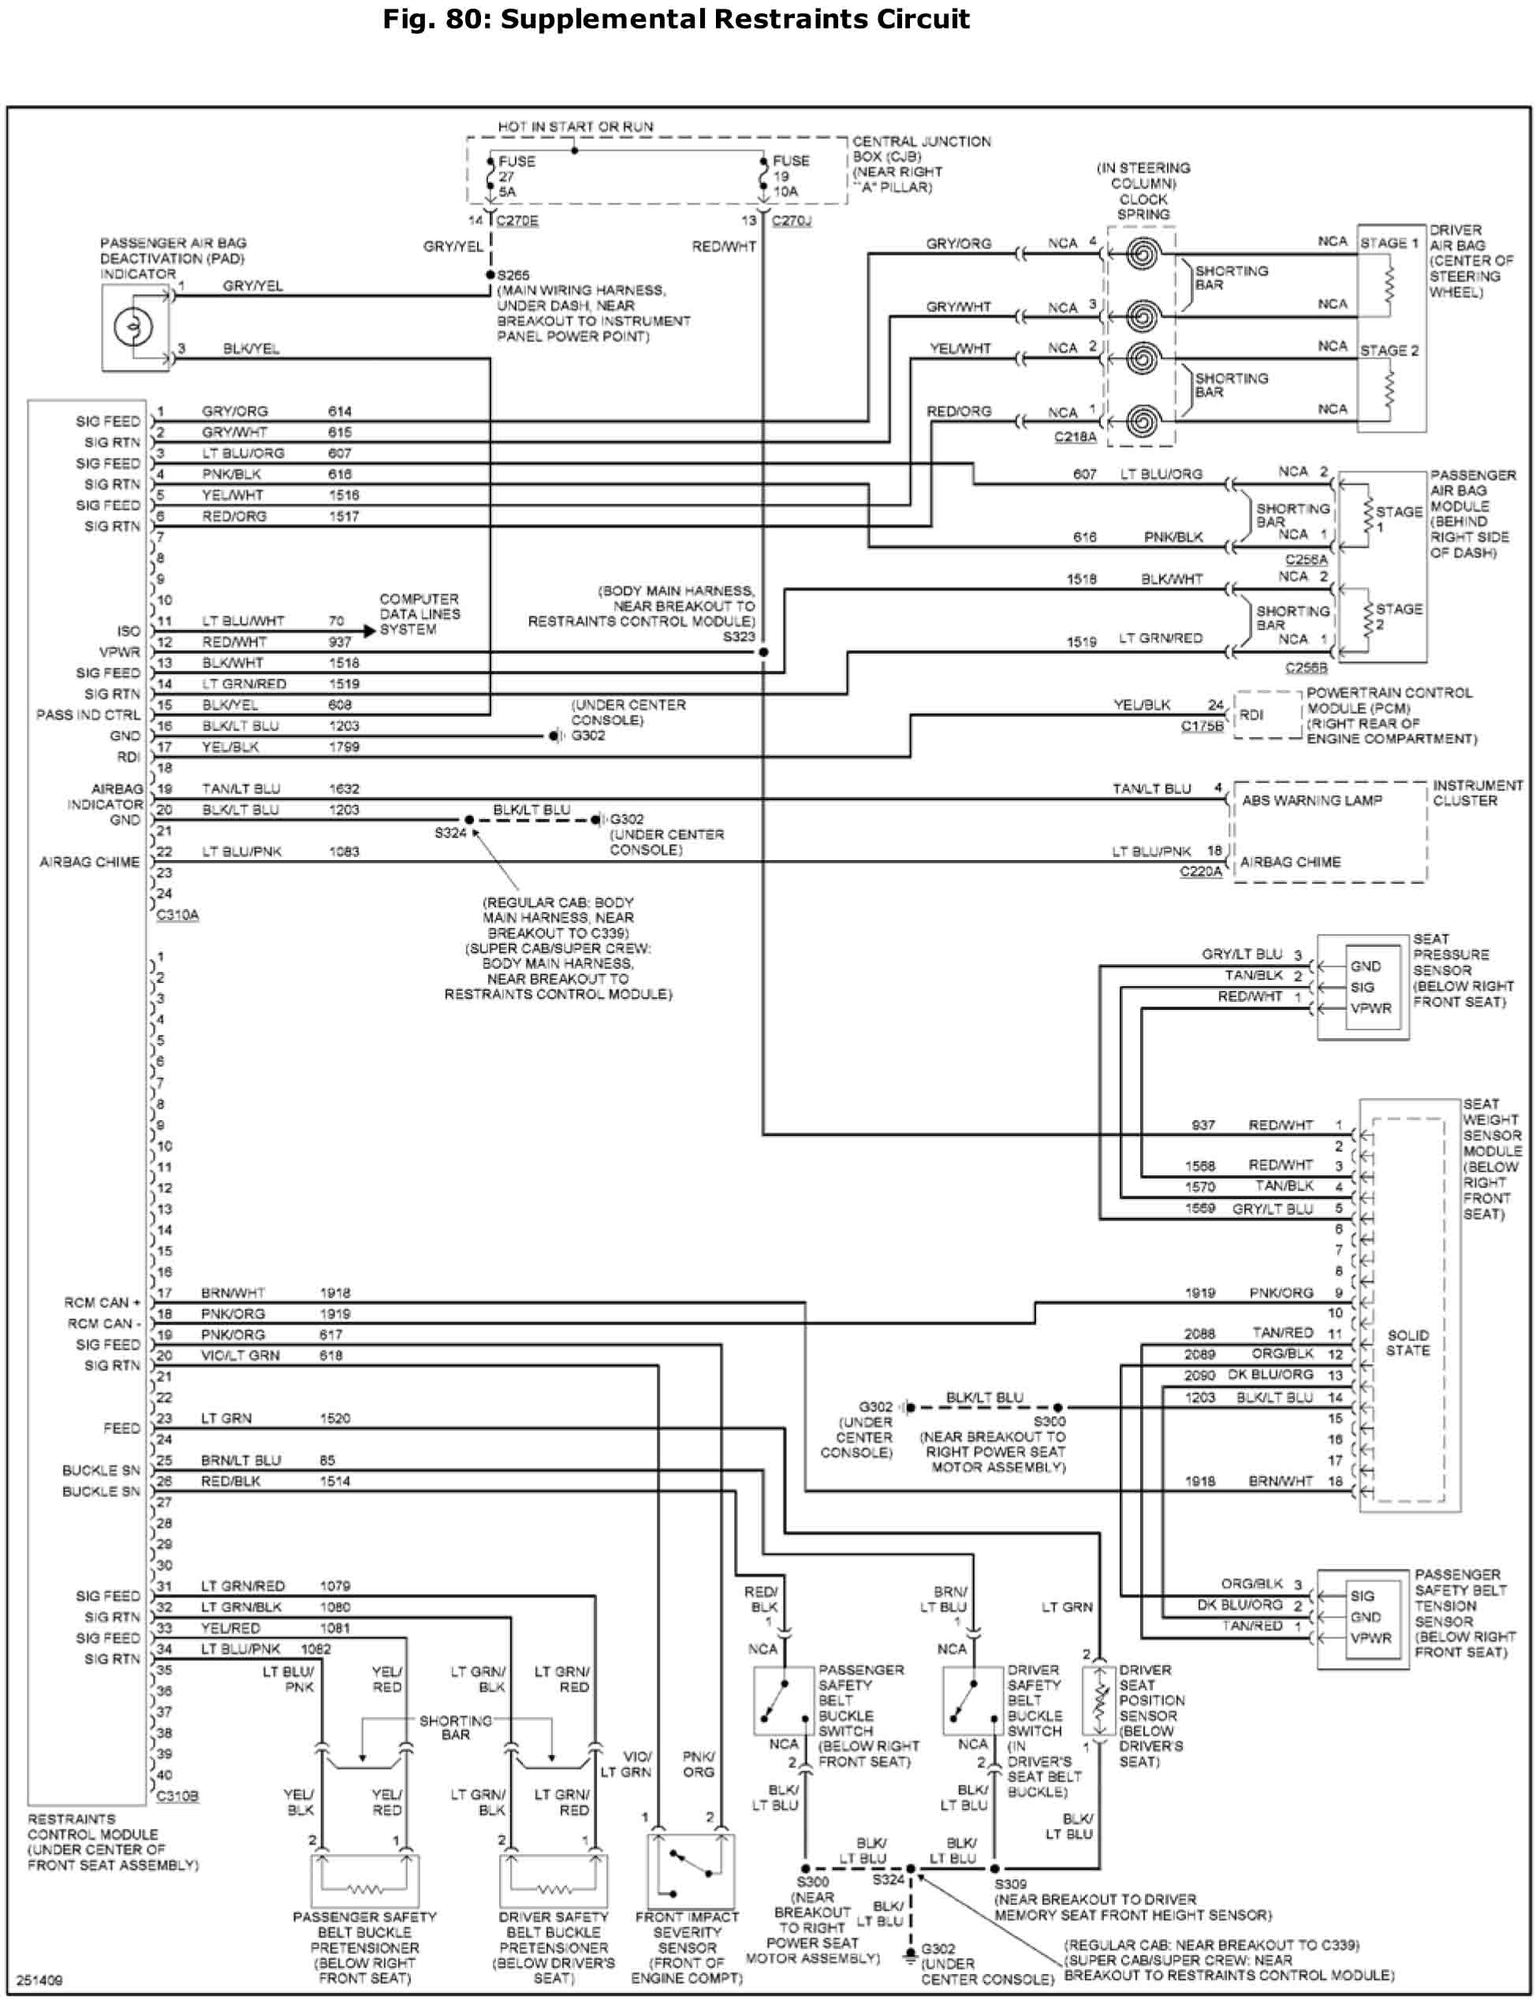 80 07f150_airbag_wiring_diagram_fe541fcfb14ed53b51926a11211ac10867cd5d95 ford abs wiring diagram ford hid headlights wiring diagram 1997 ford ranger stereo wiring diagram at bayanpartner.co